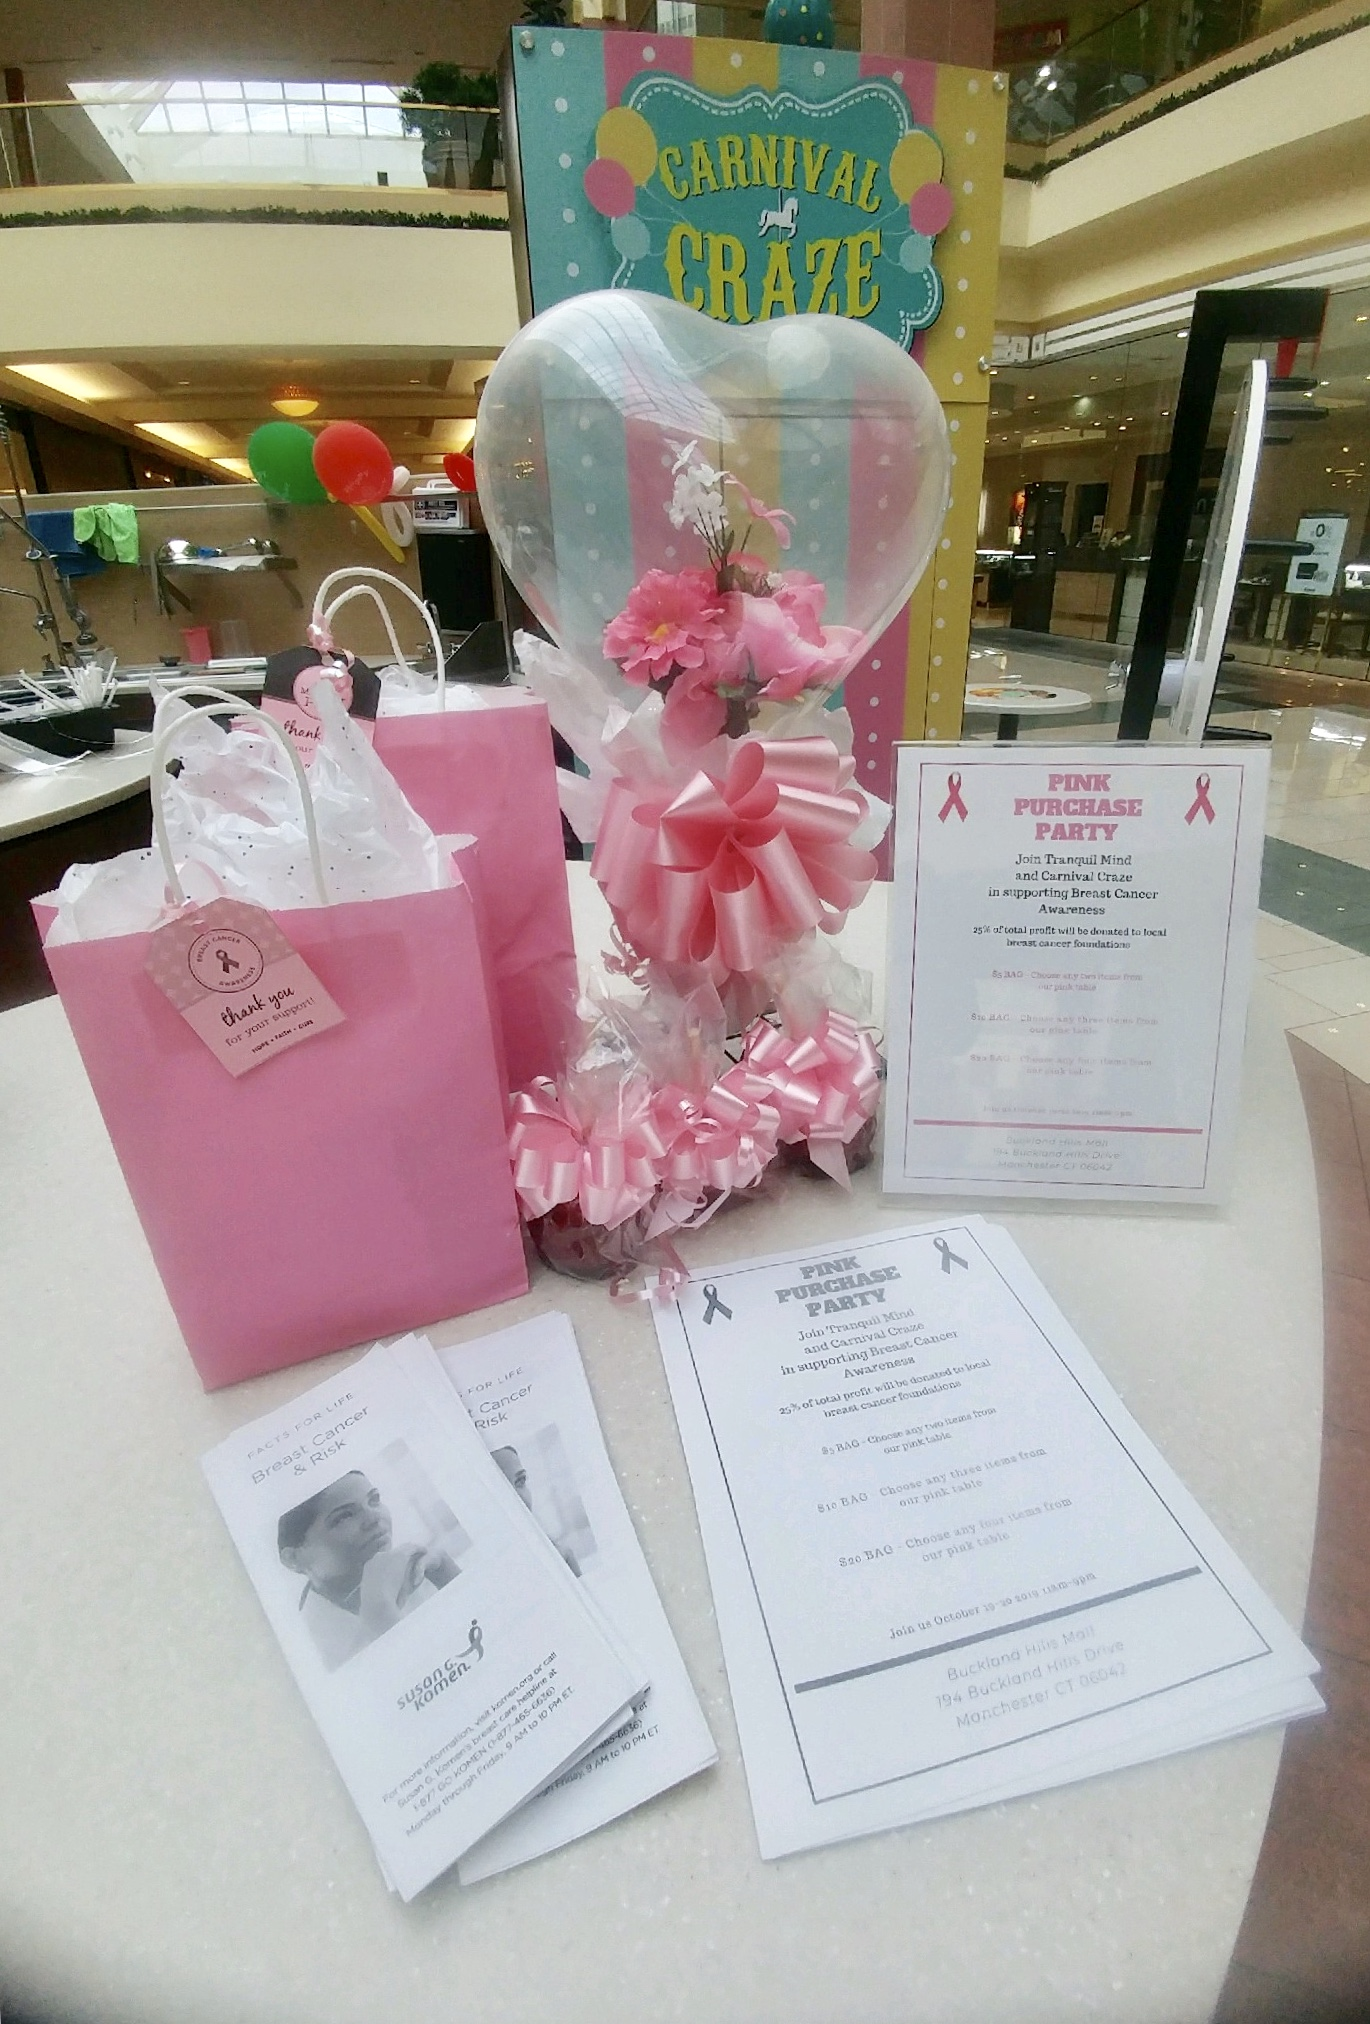 Join Tranquil Mind and Carnival Craze in supporting Breast Cancer Awareness